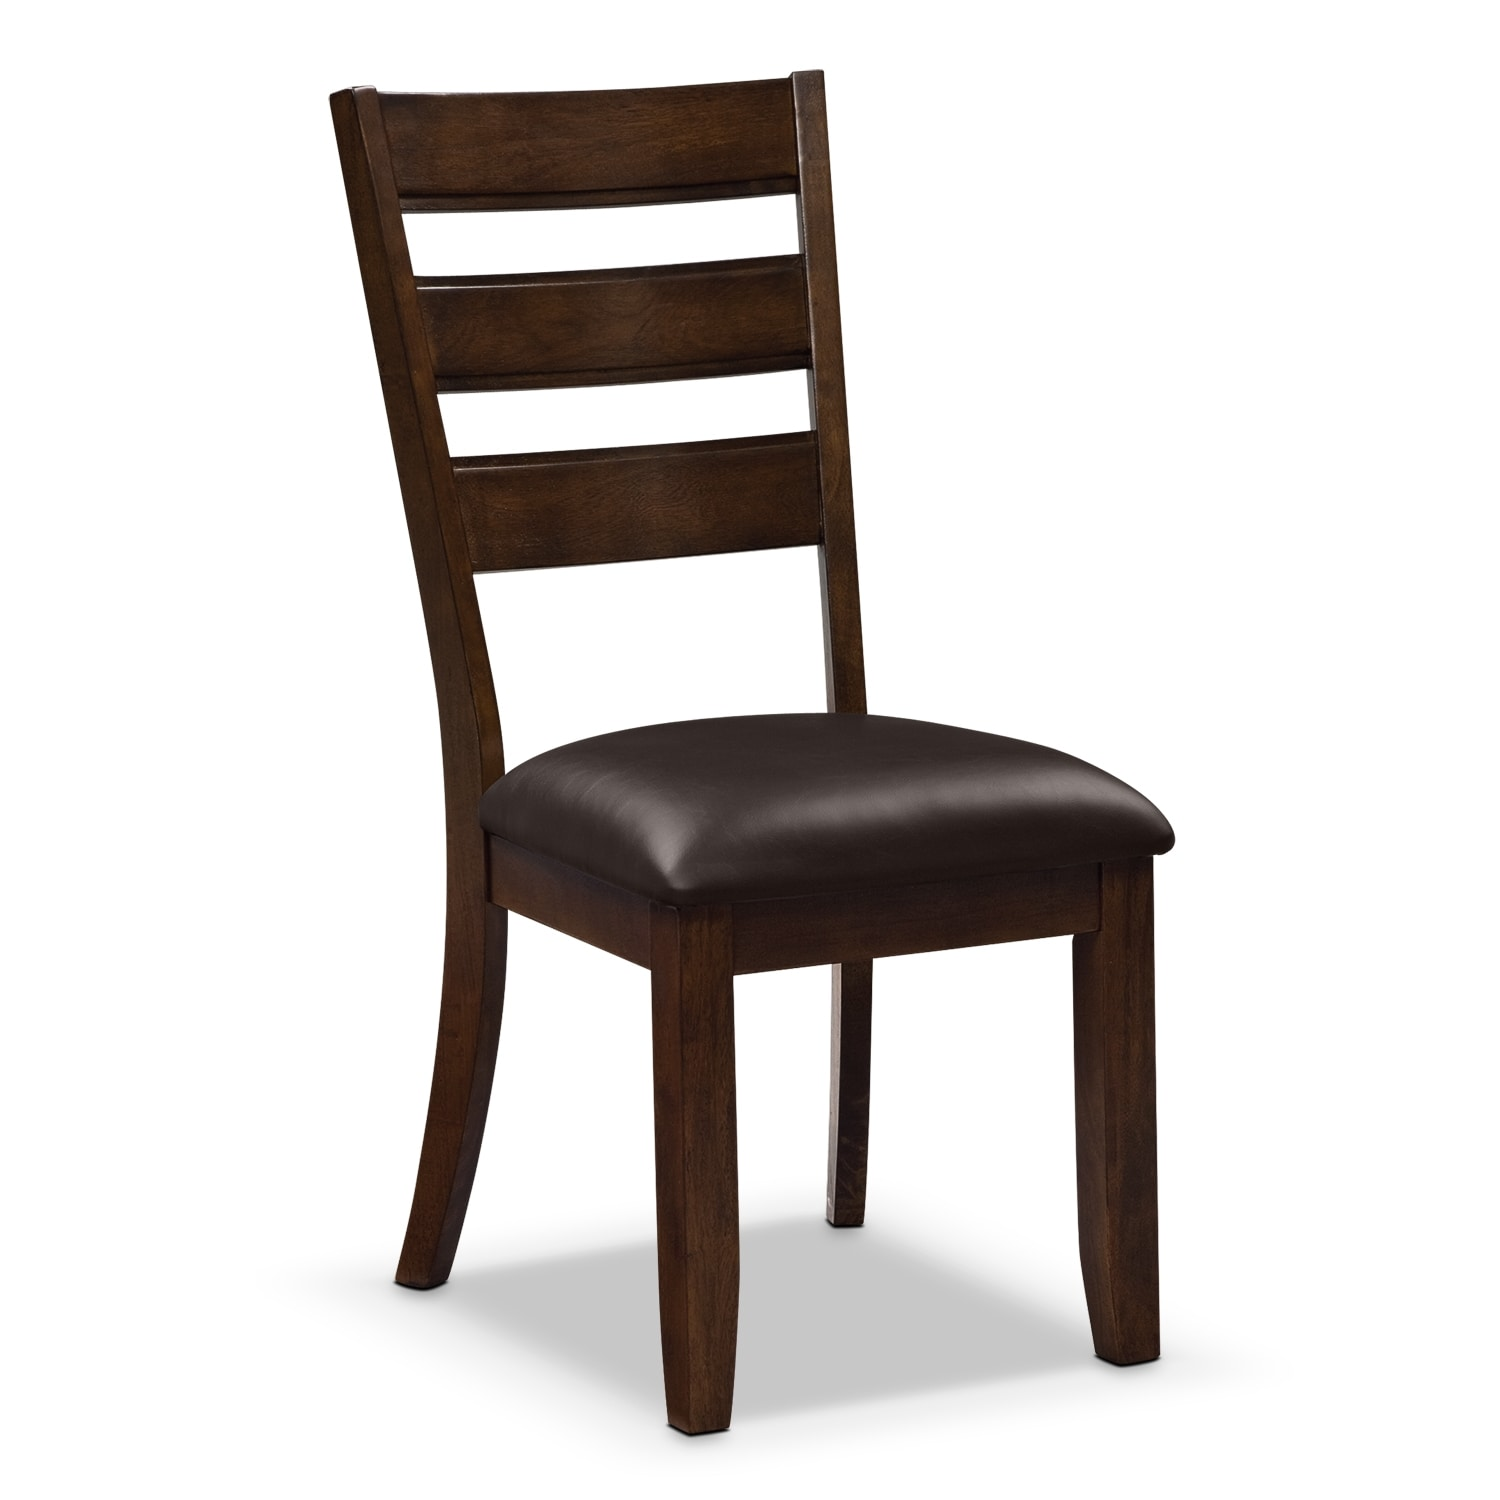 American Signature Furniture Abaco Dining Room Chair : 277864 from americansignaturefurniture.com size 1500 x 1500 jpeg 308kB